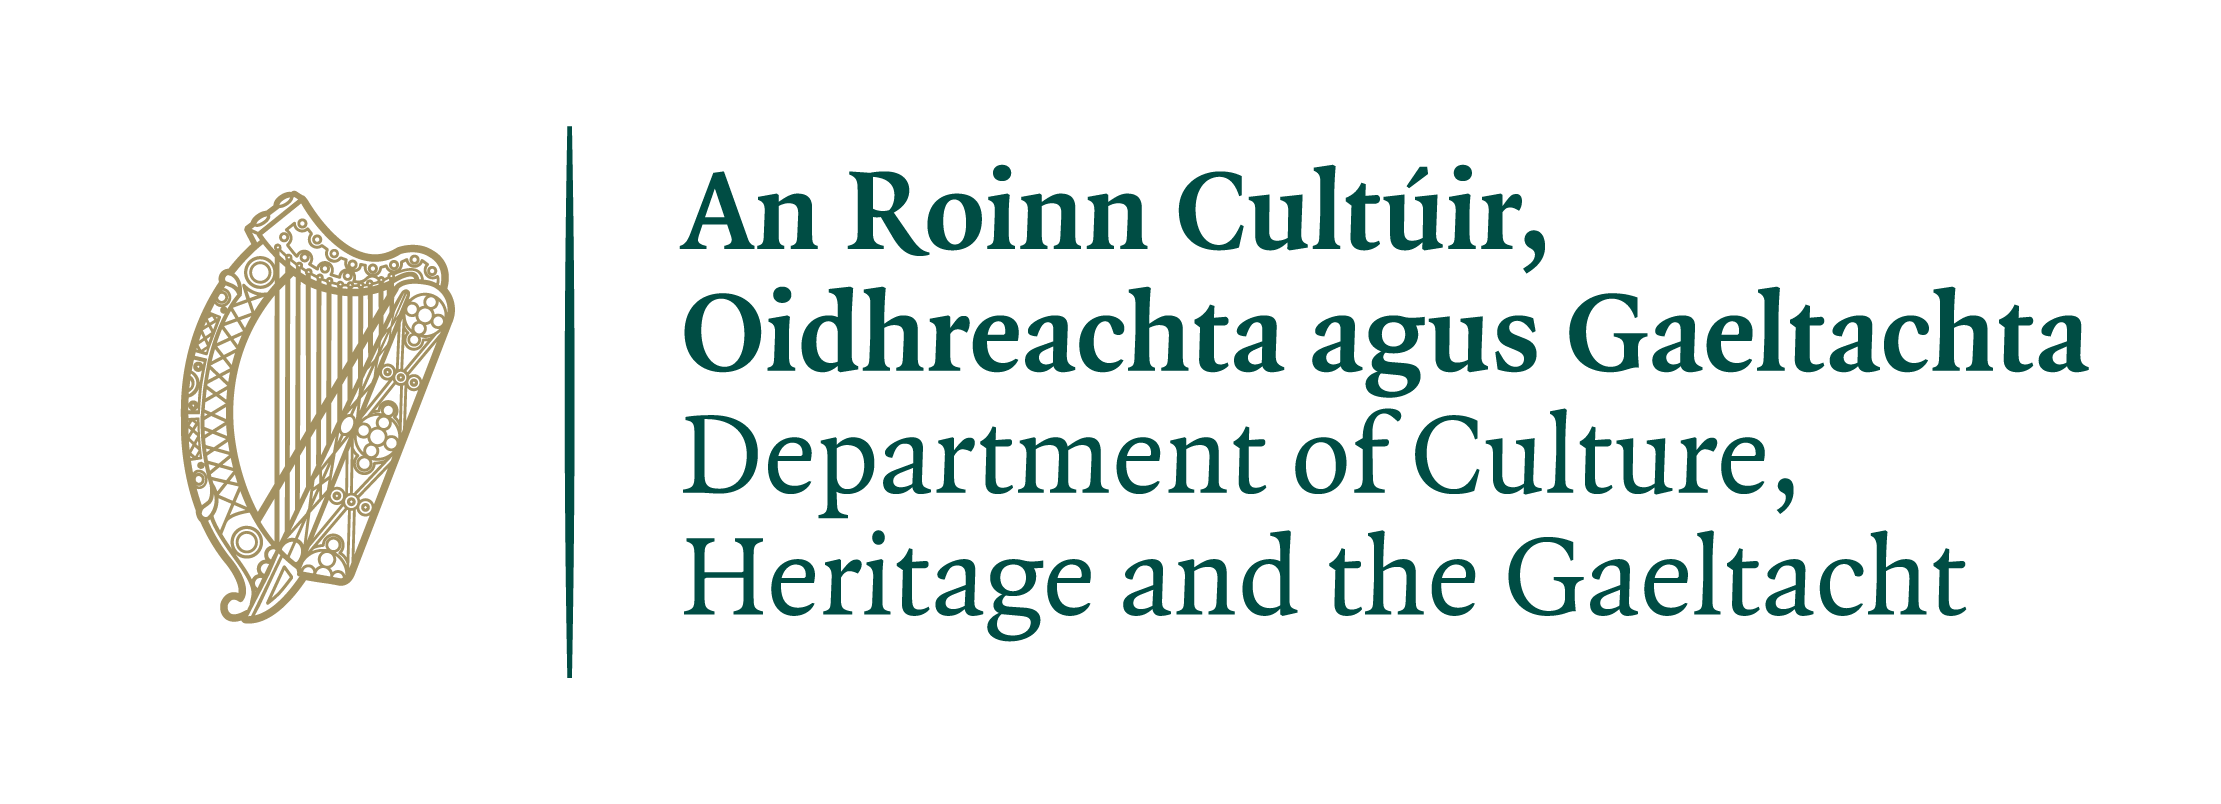 Logo of The Department of Culture Heritage and the Gaeltacht